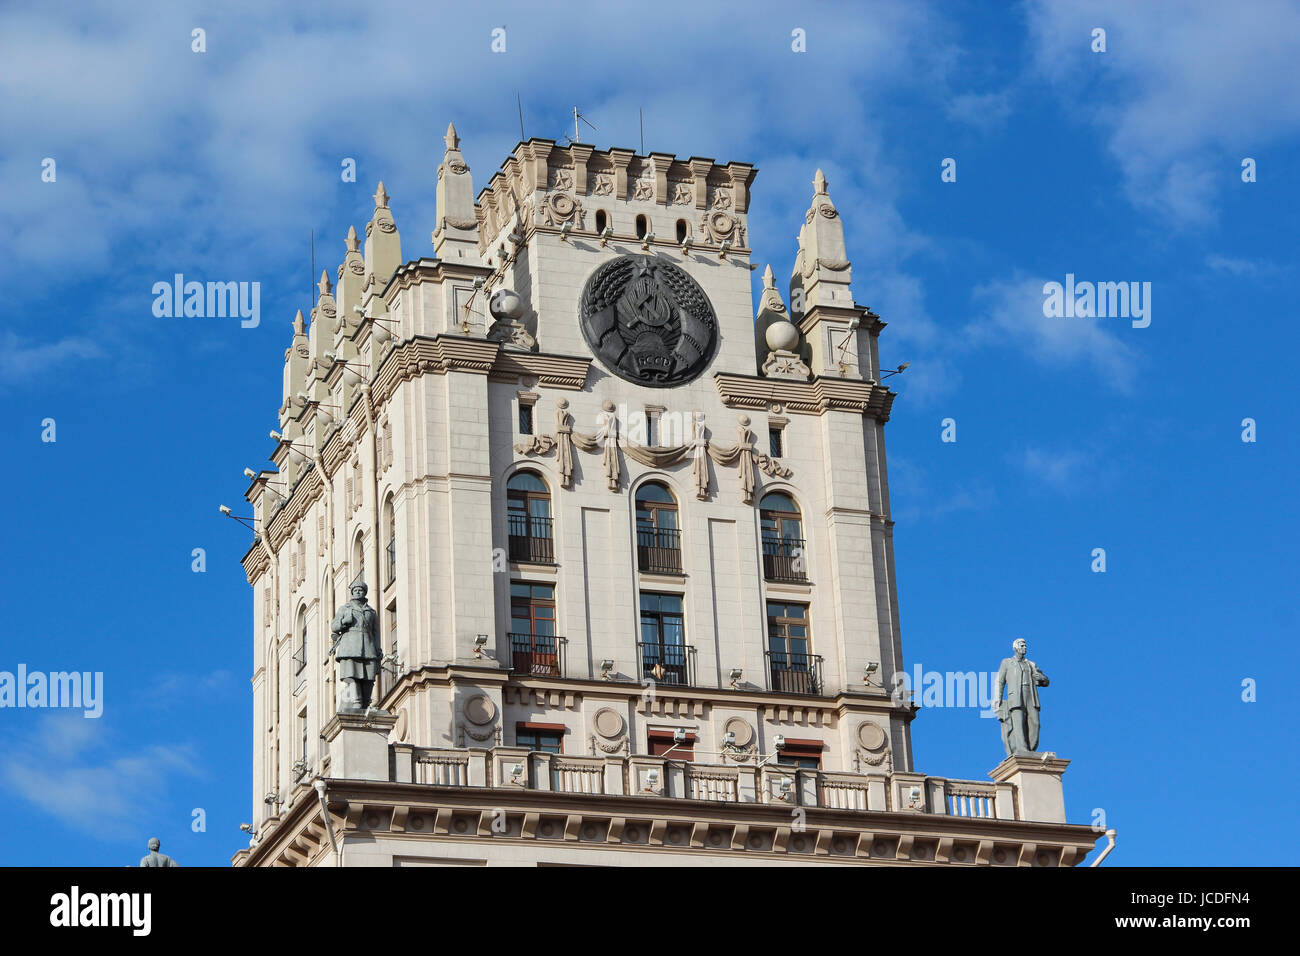 Tower in the style of Stalin's empire on the station square in Minsk, Belarus. - Stock Image